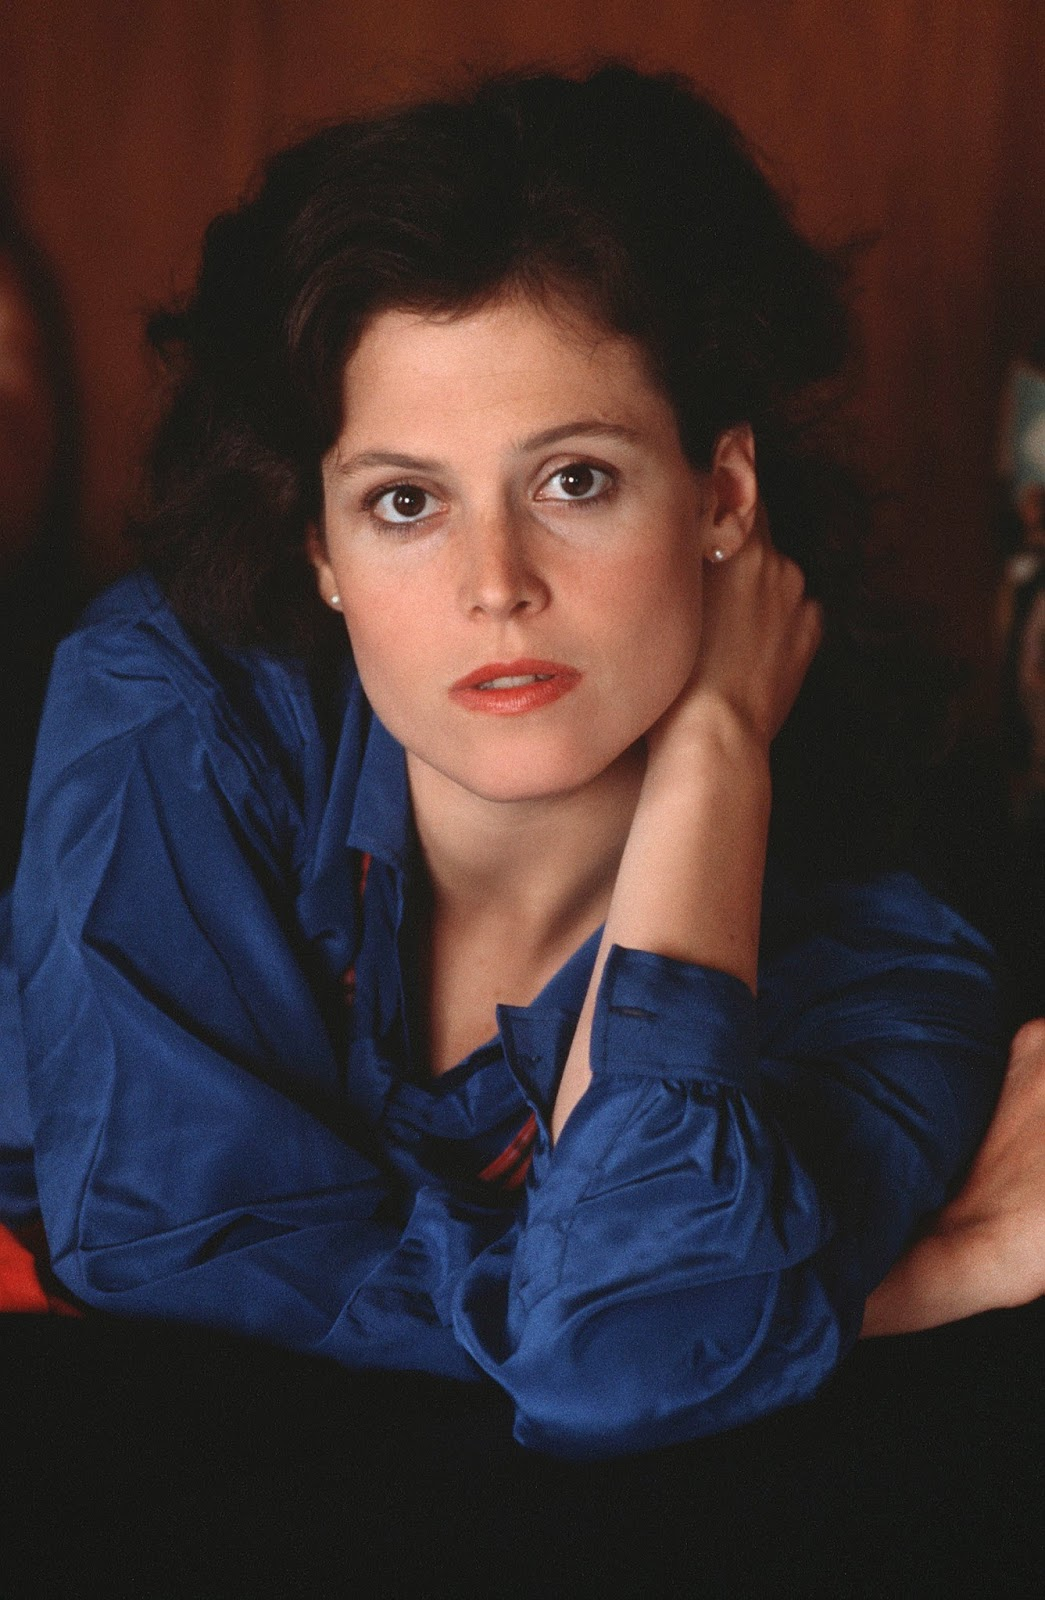 Sigourney Weaver Filmography And Biography On Movies Film: The Movies Of Sigourney Weaver